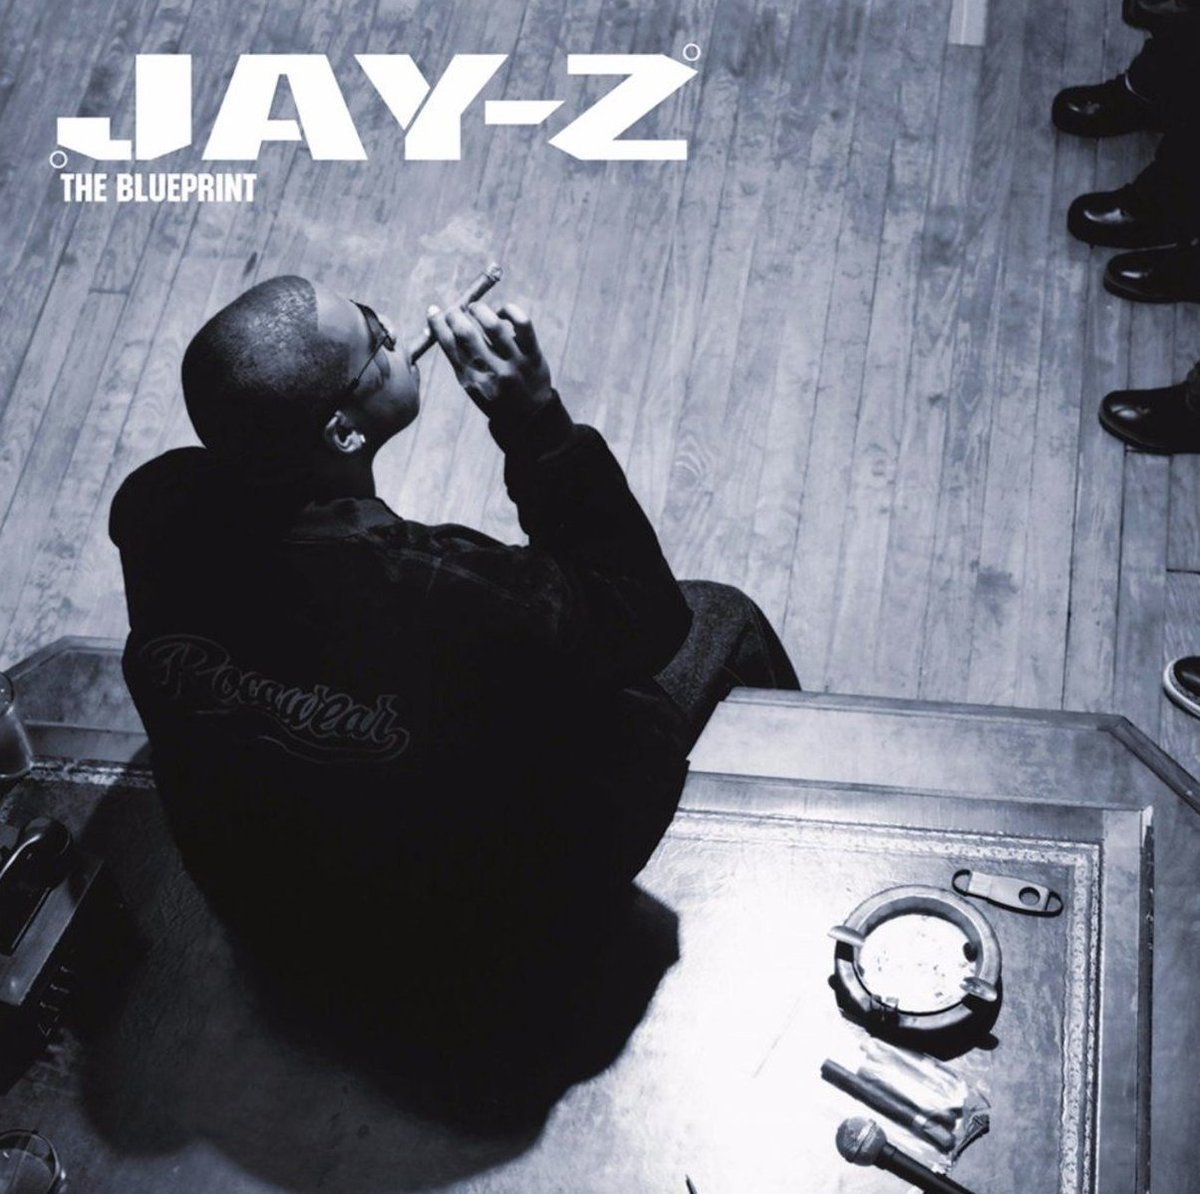 19 years ago today, Jay-Z released 'The Blueprint'